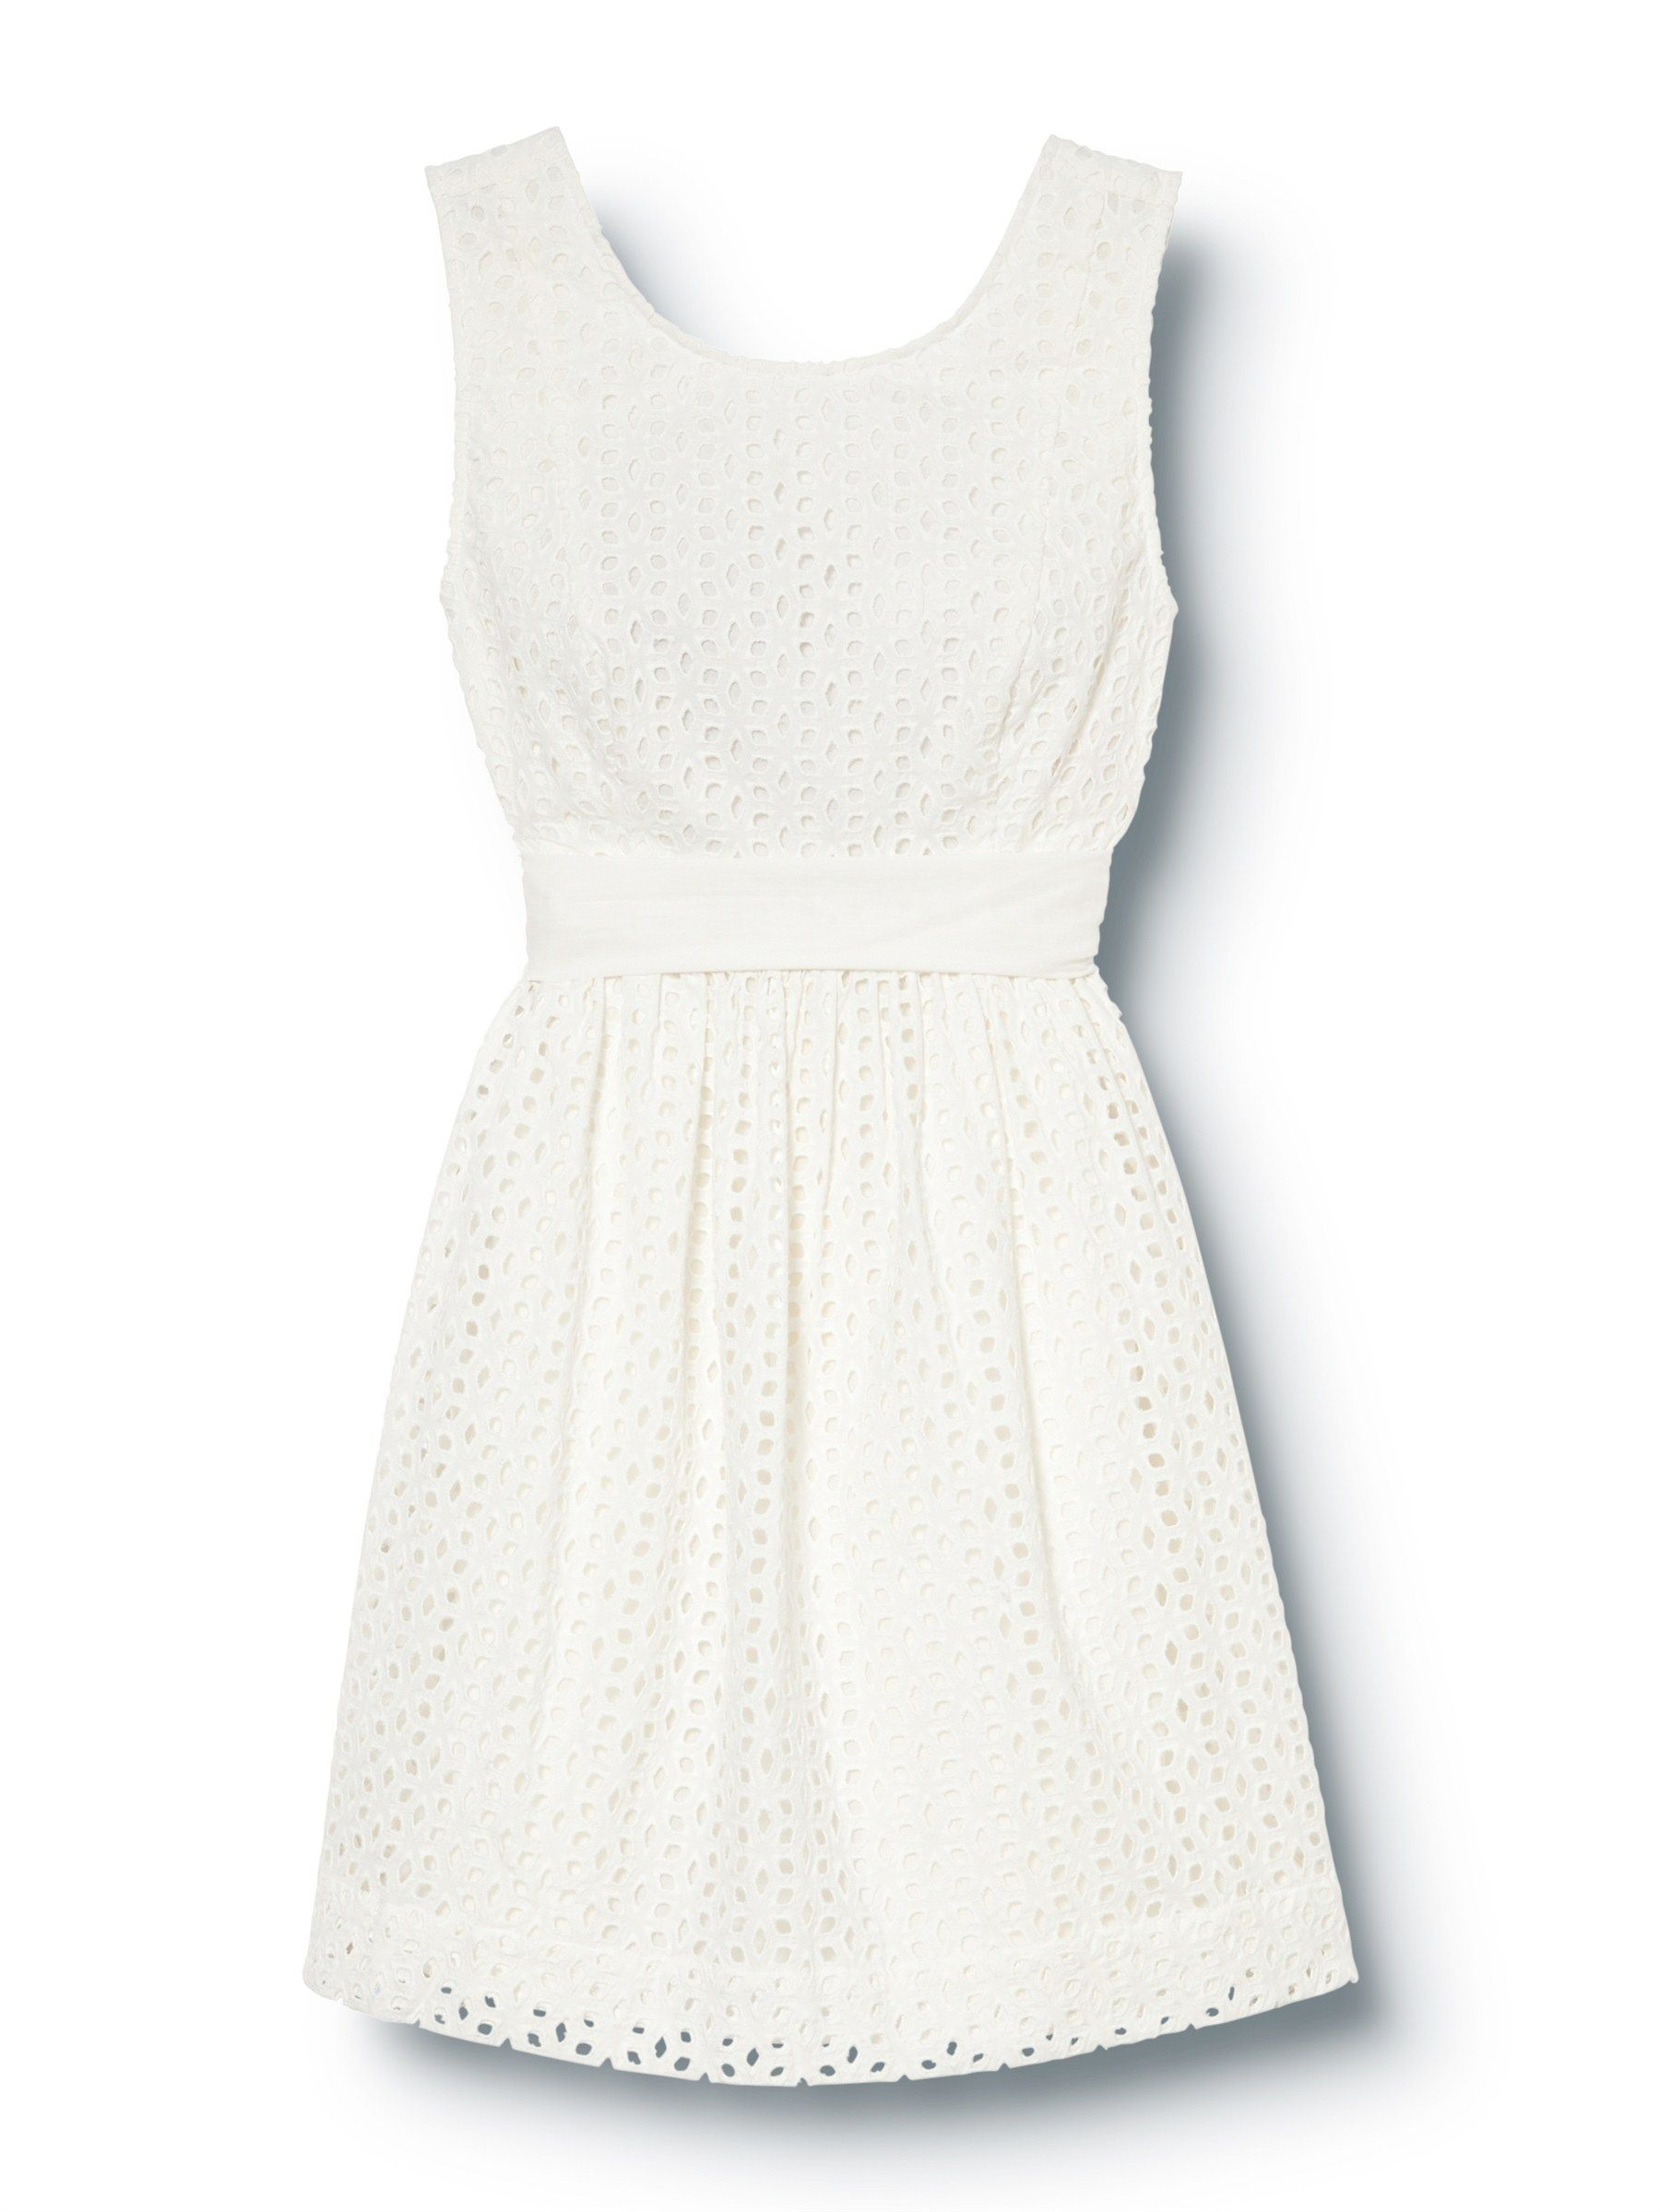 Wax Flower Dress Low Back Awesome Outfits Pinterest Wax